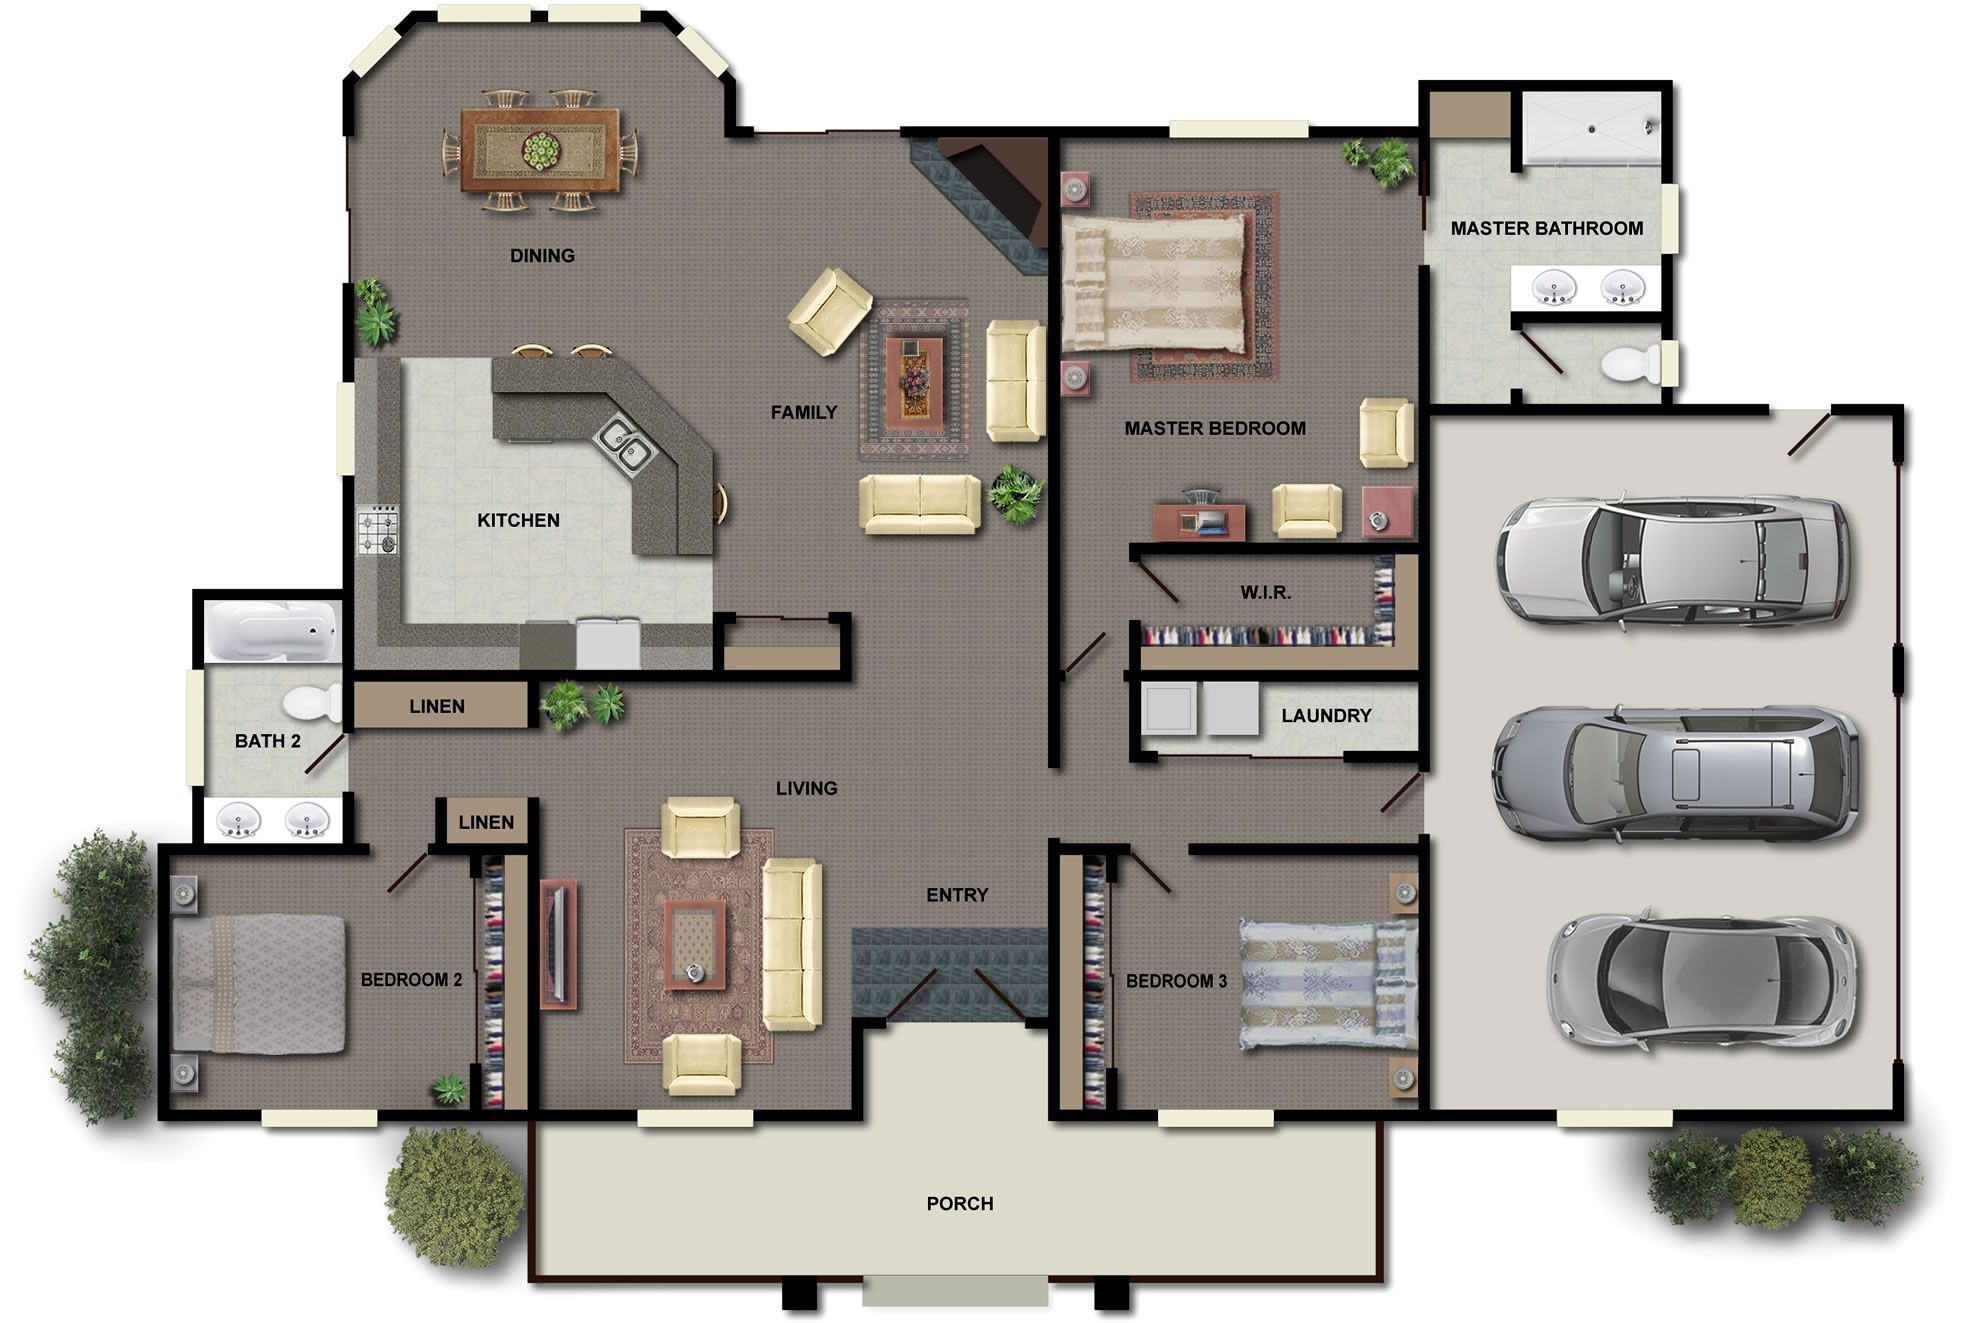 floor plans a floor plan is a drawing to scale type garage showing a view from above of the relationships between rooms bedroom floor plans pinterest